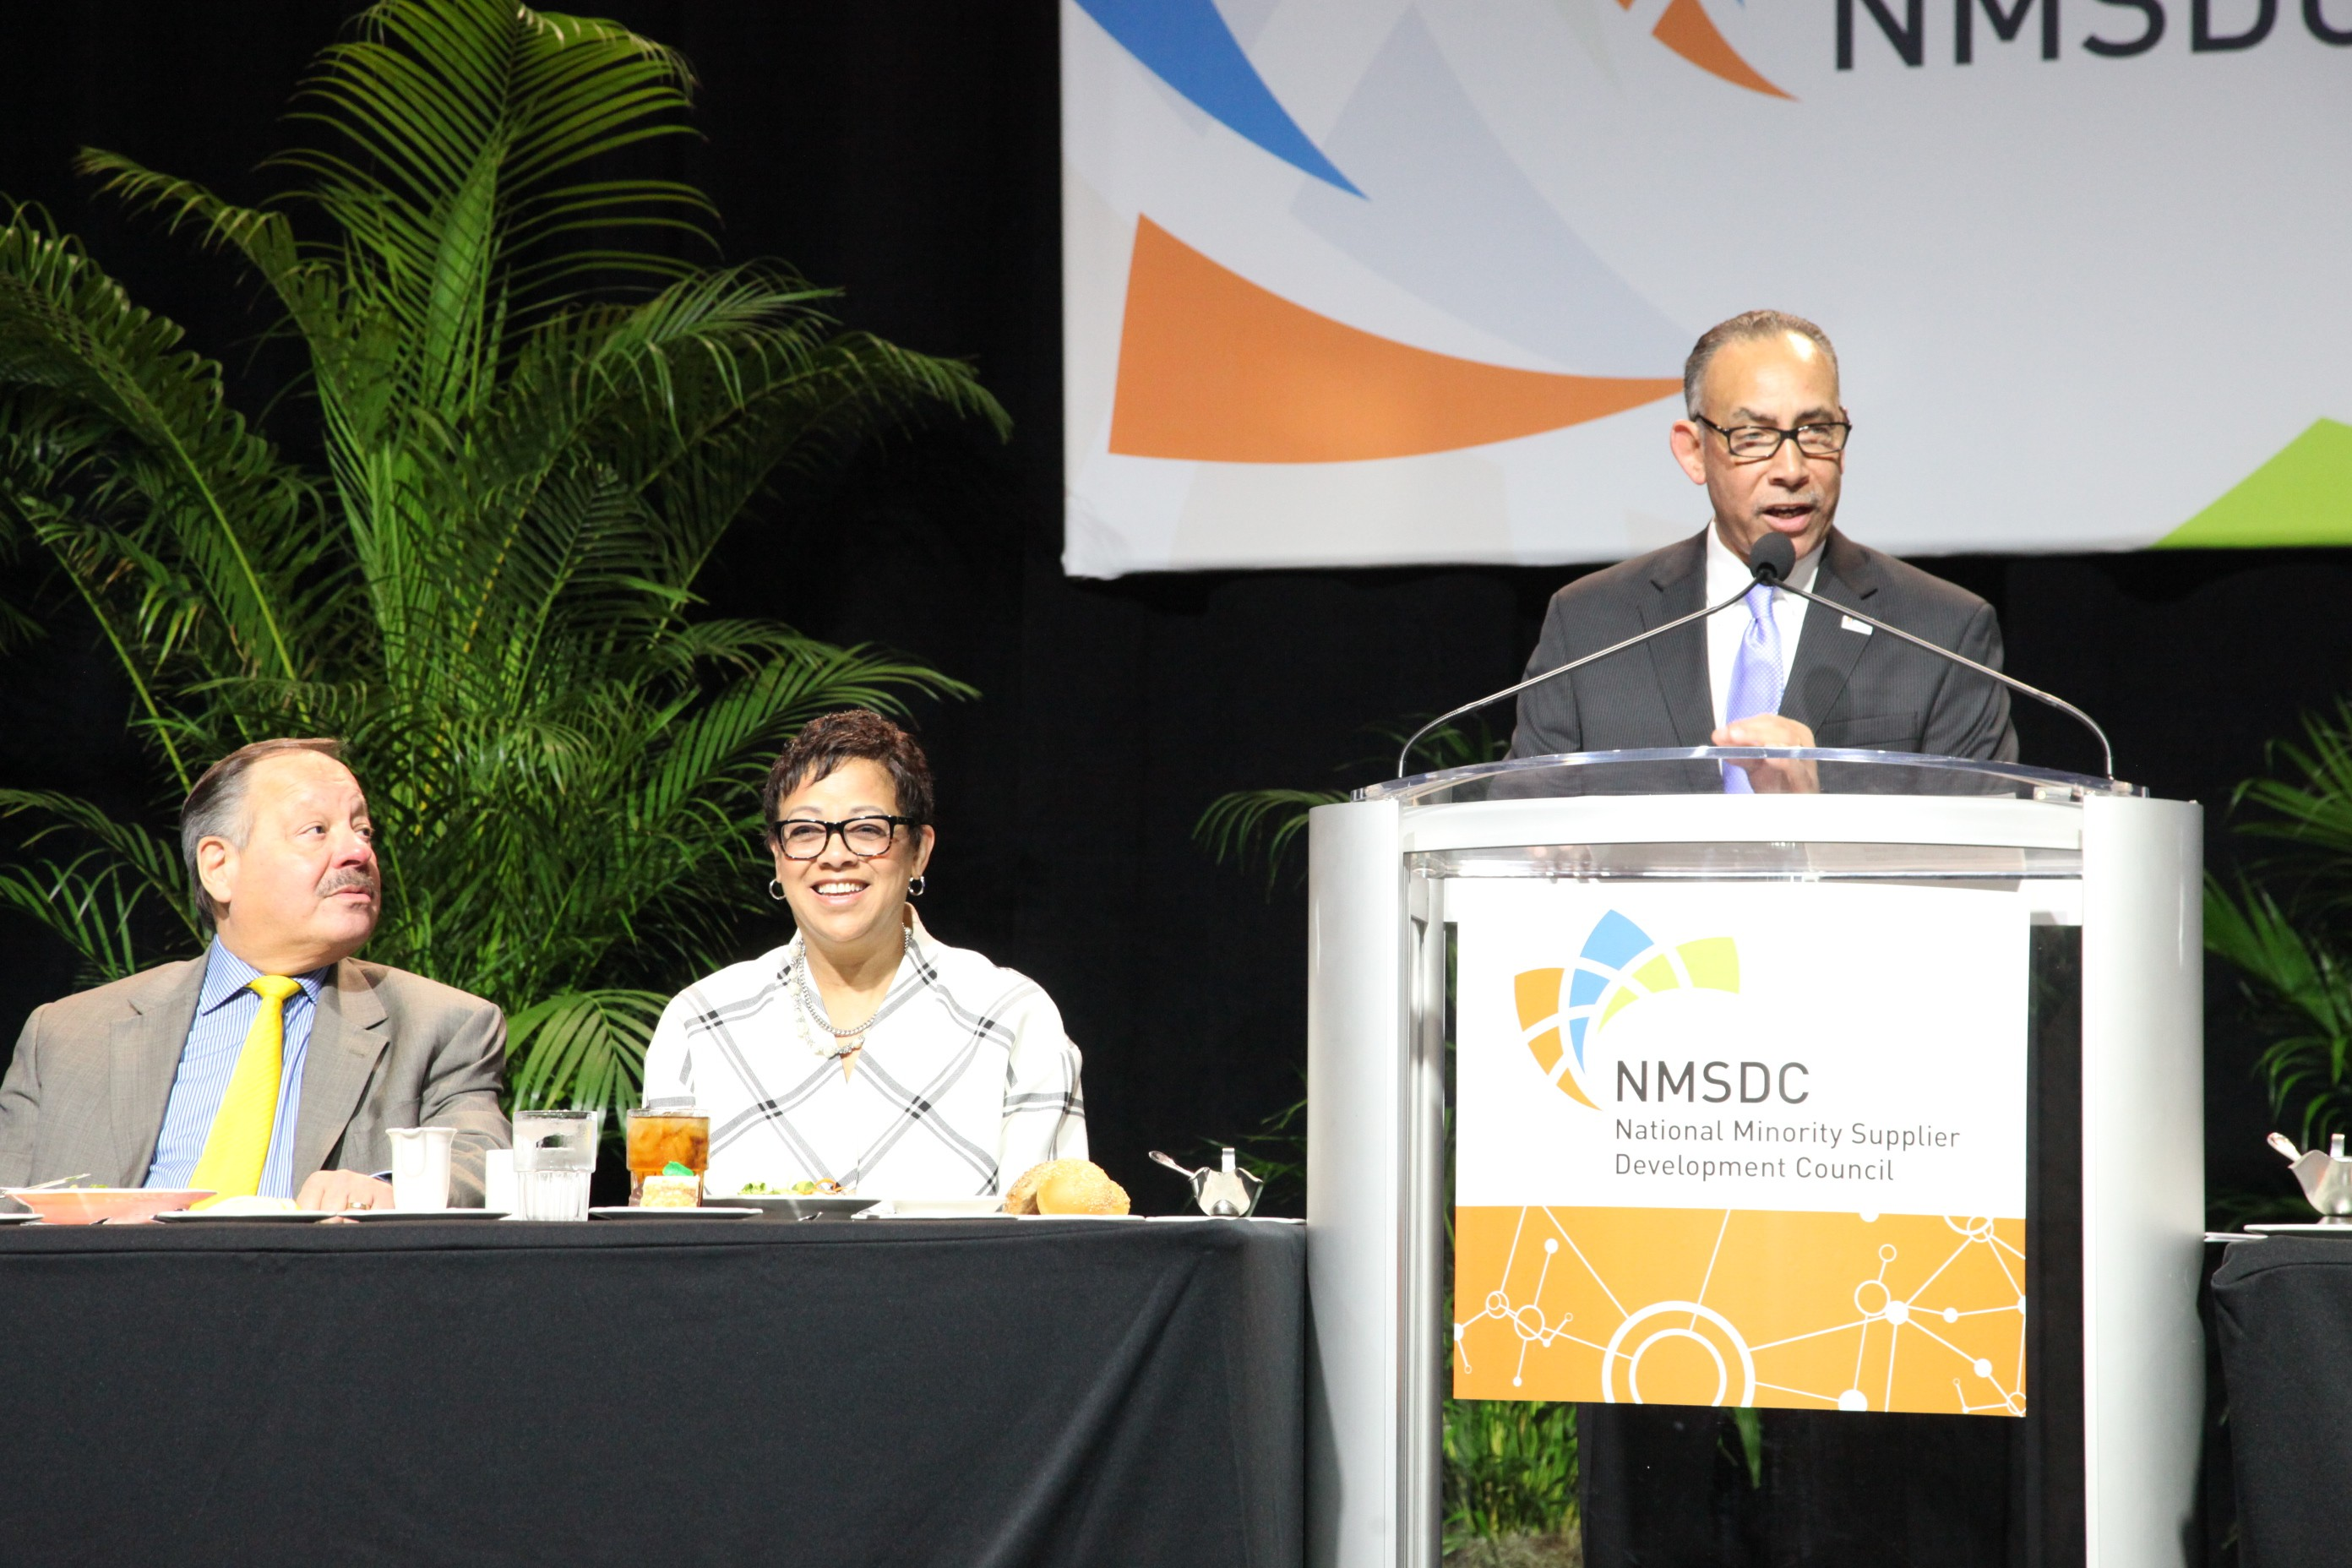 Shelley Stewart, Jr. of DuPont speaks at the 2014 NMSDC Luncheon.